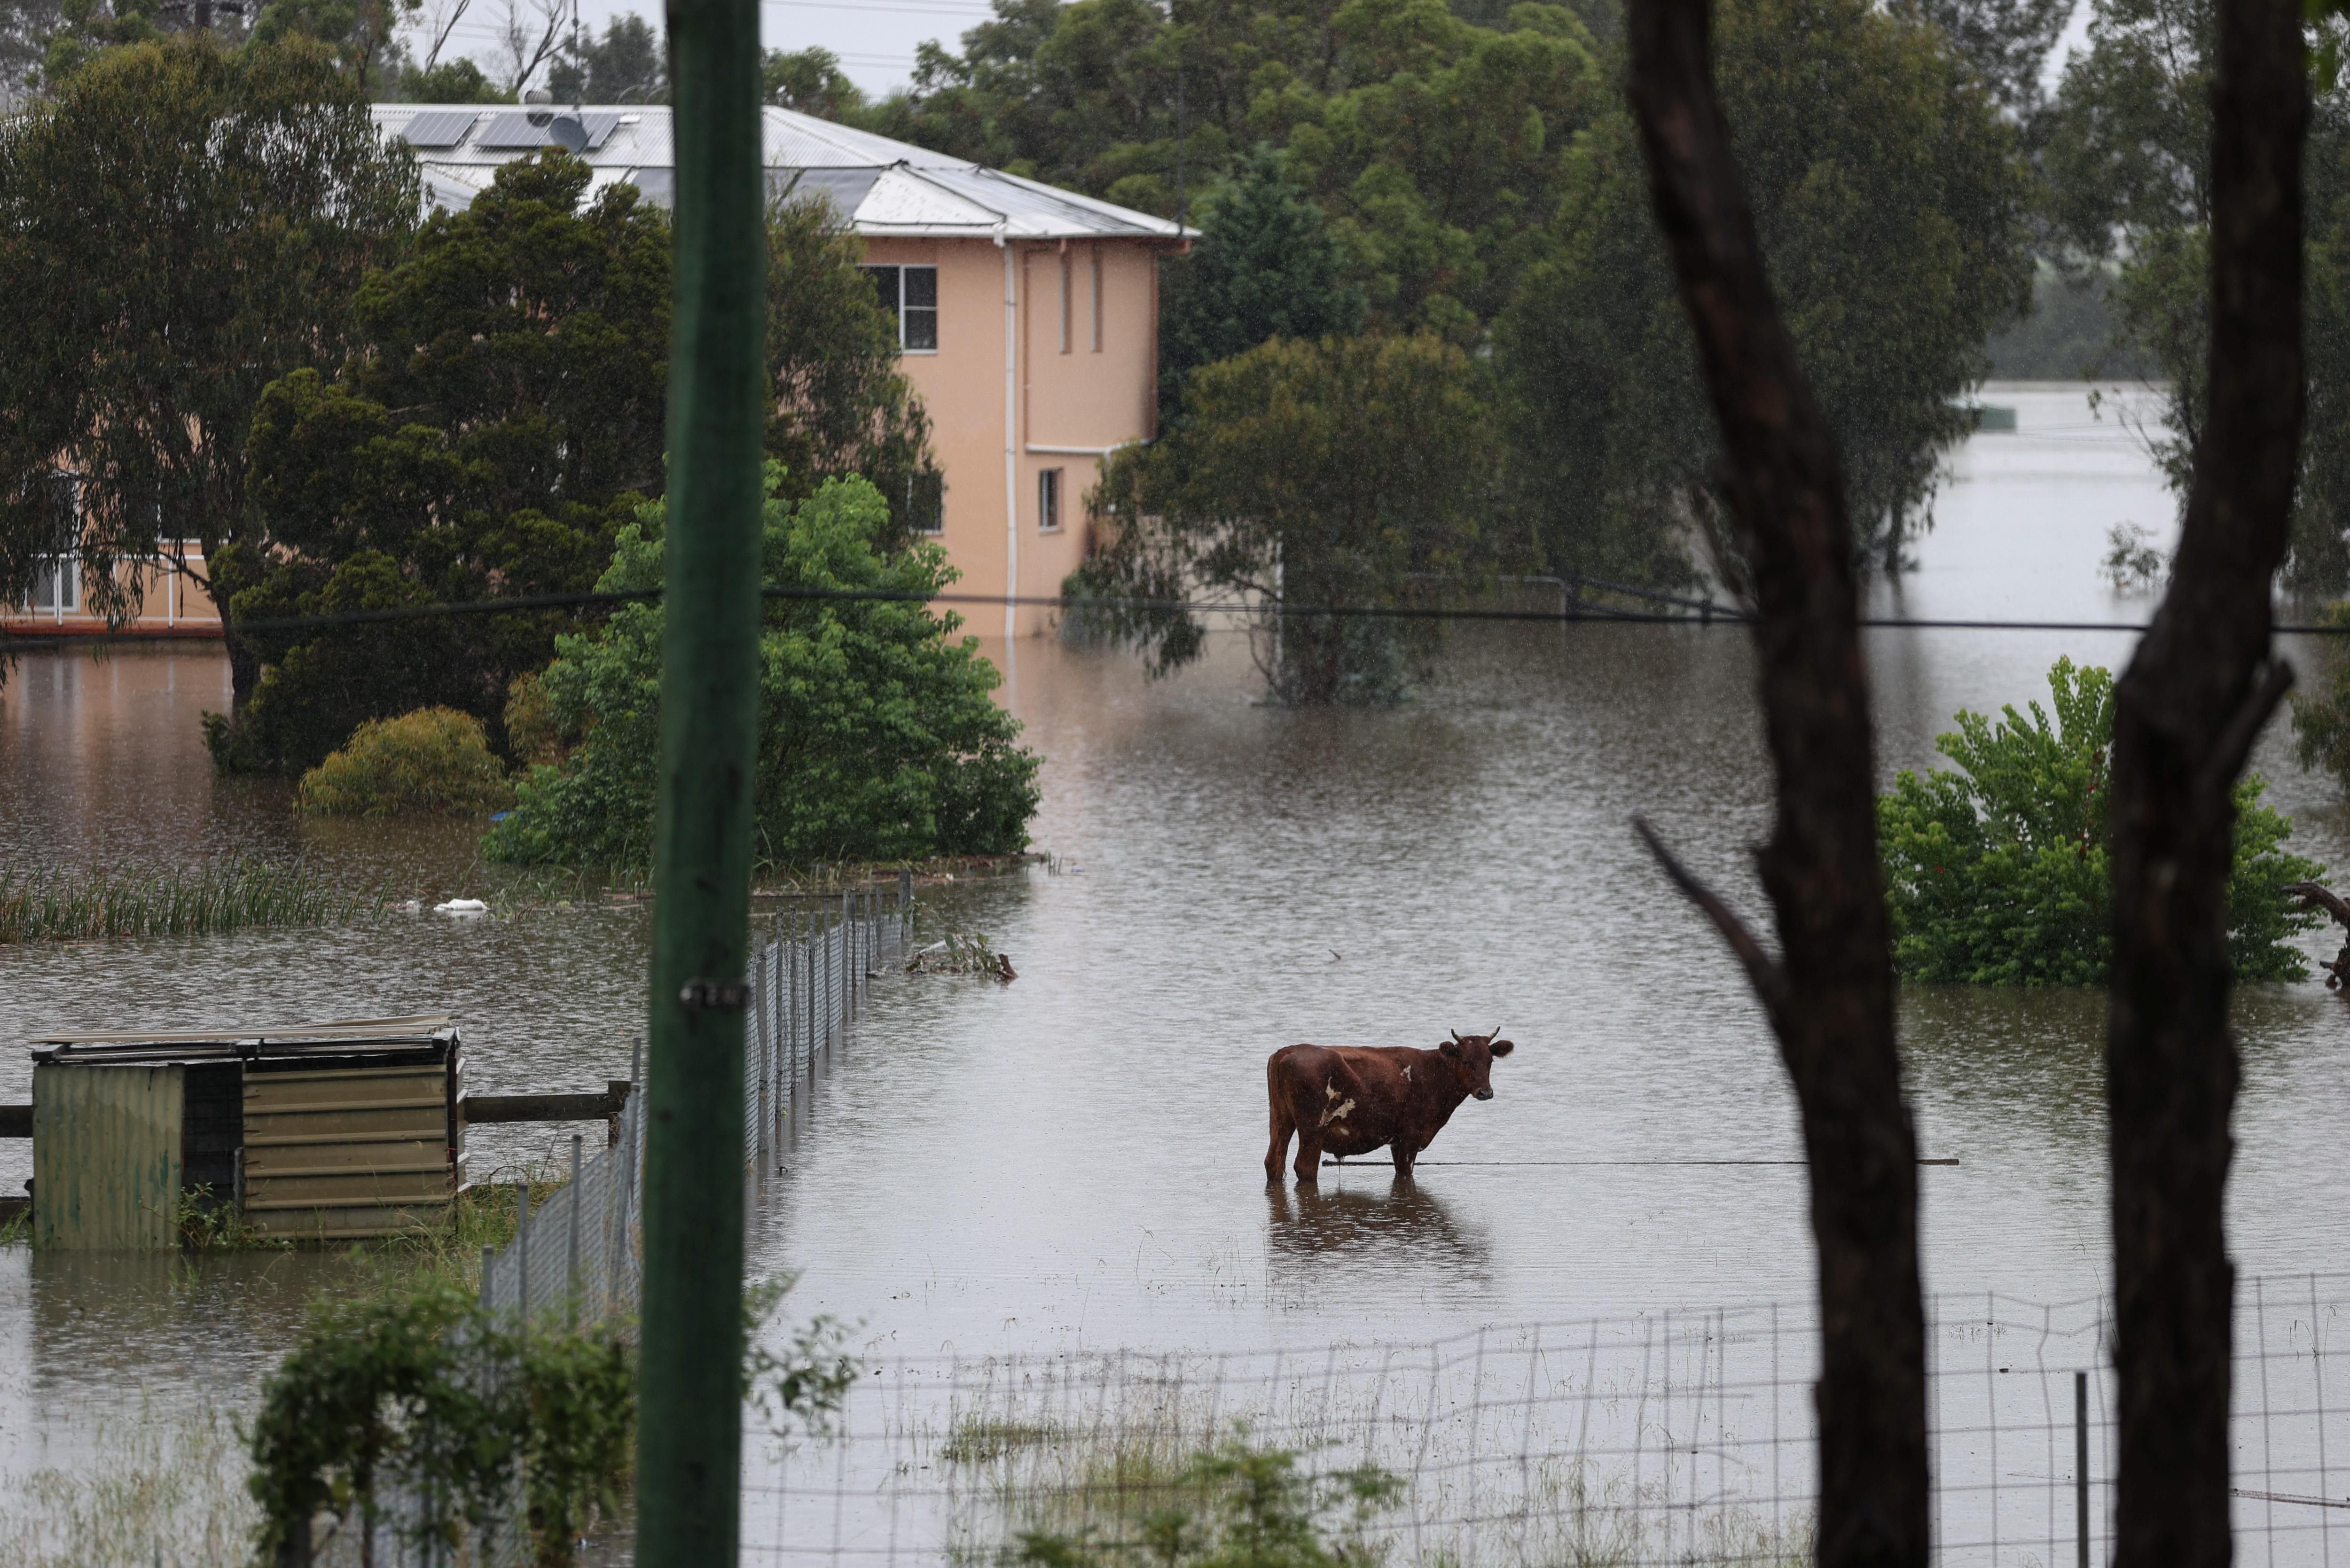 Livestock is seen as floodwaters rise in the suburb of Windsor, as the state of New South Wales experiences widespread flooding and severe weather, in Sydney, Australia, March 22, 2021.